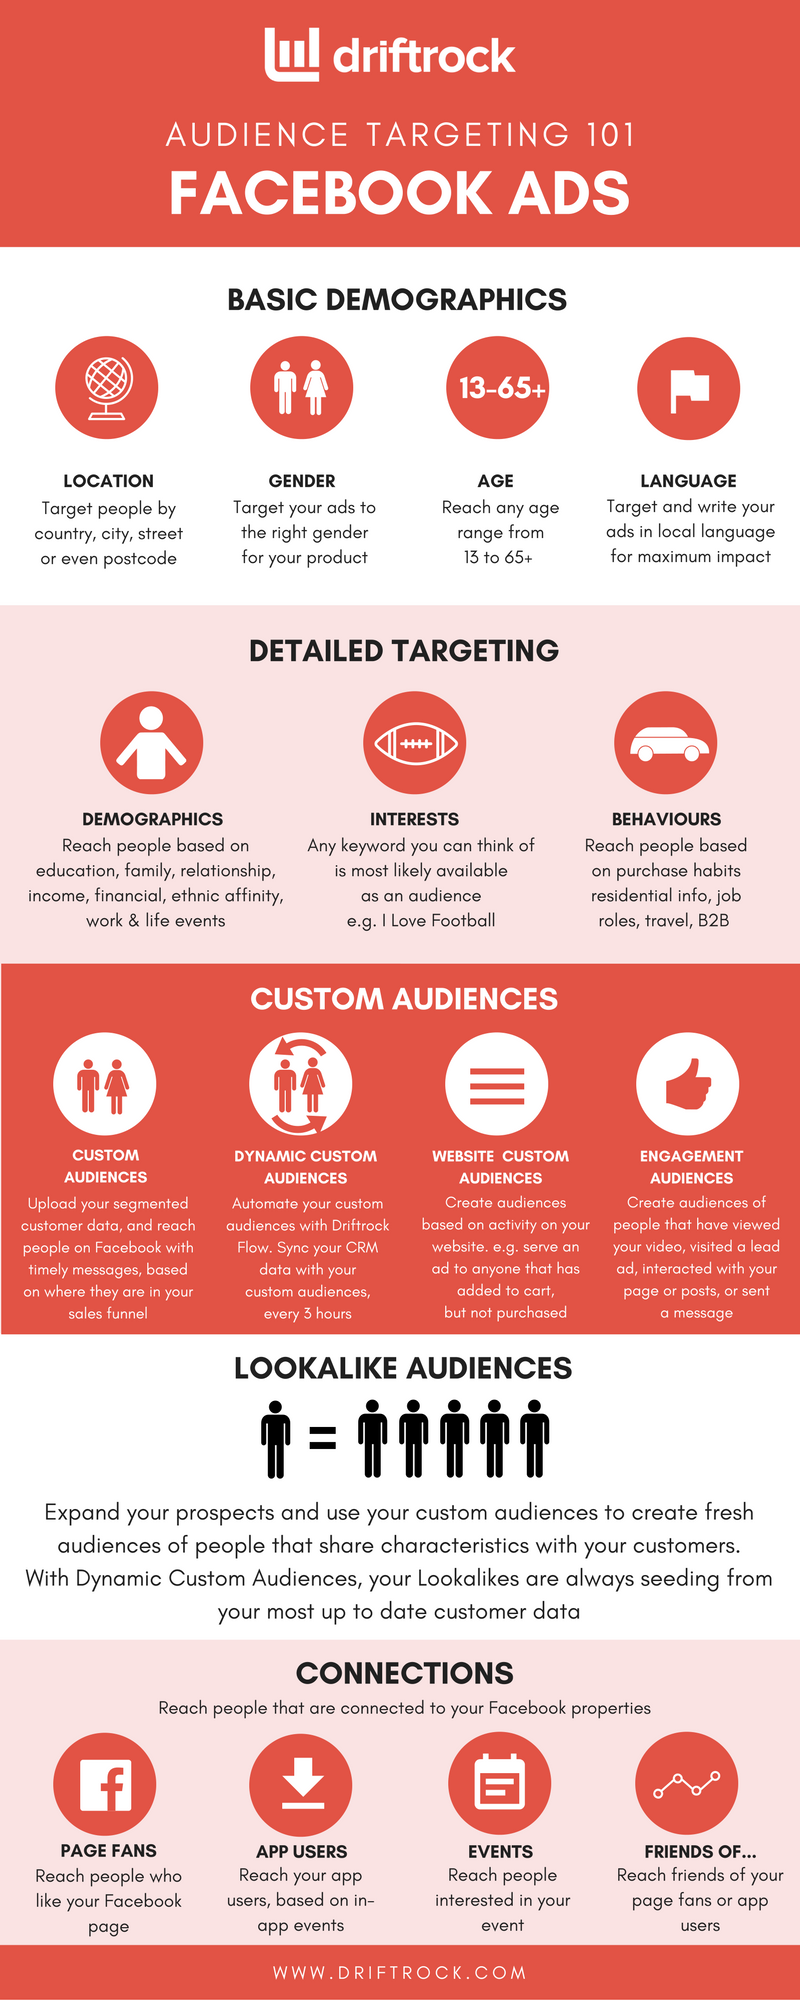 Driftrock's Quick-Start Guide to Facebook Targeting